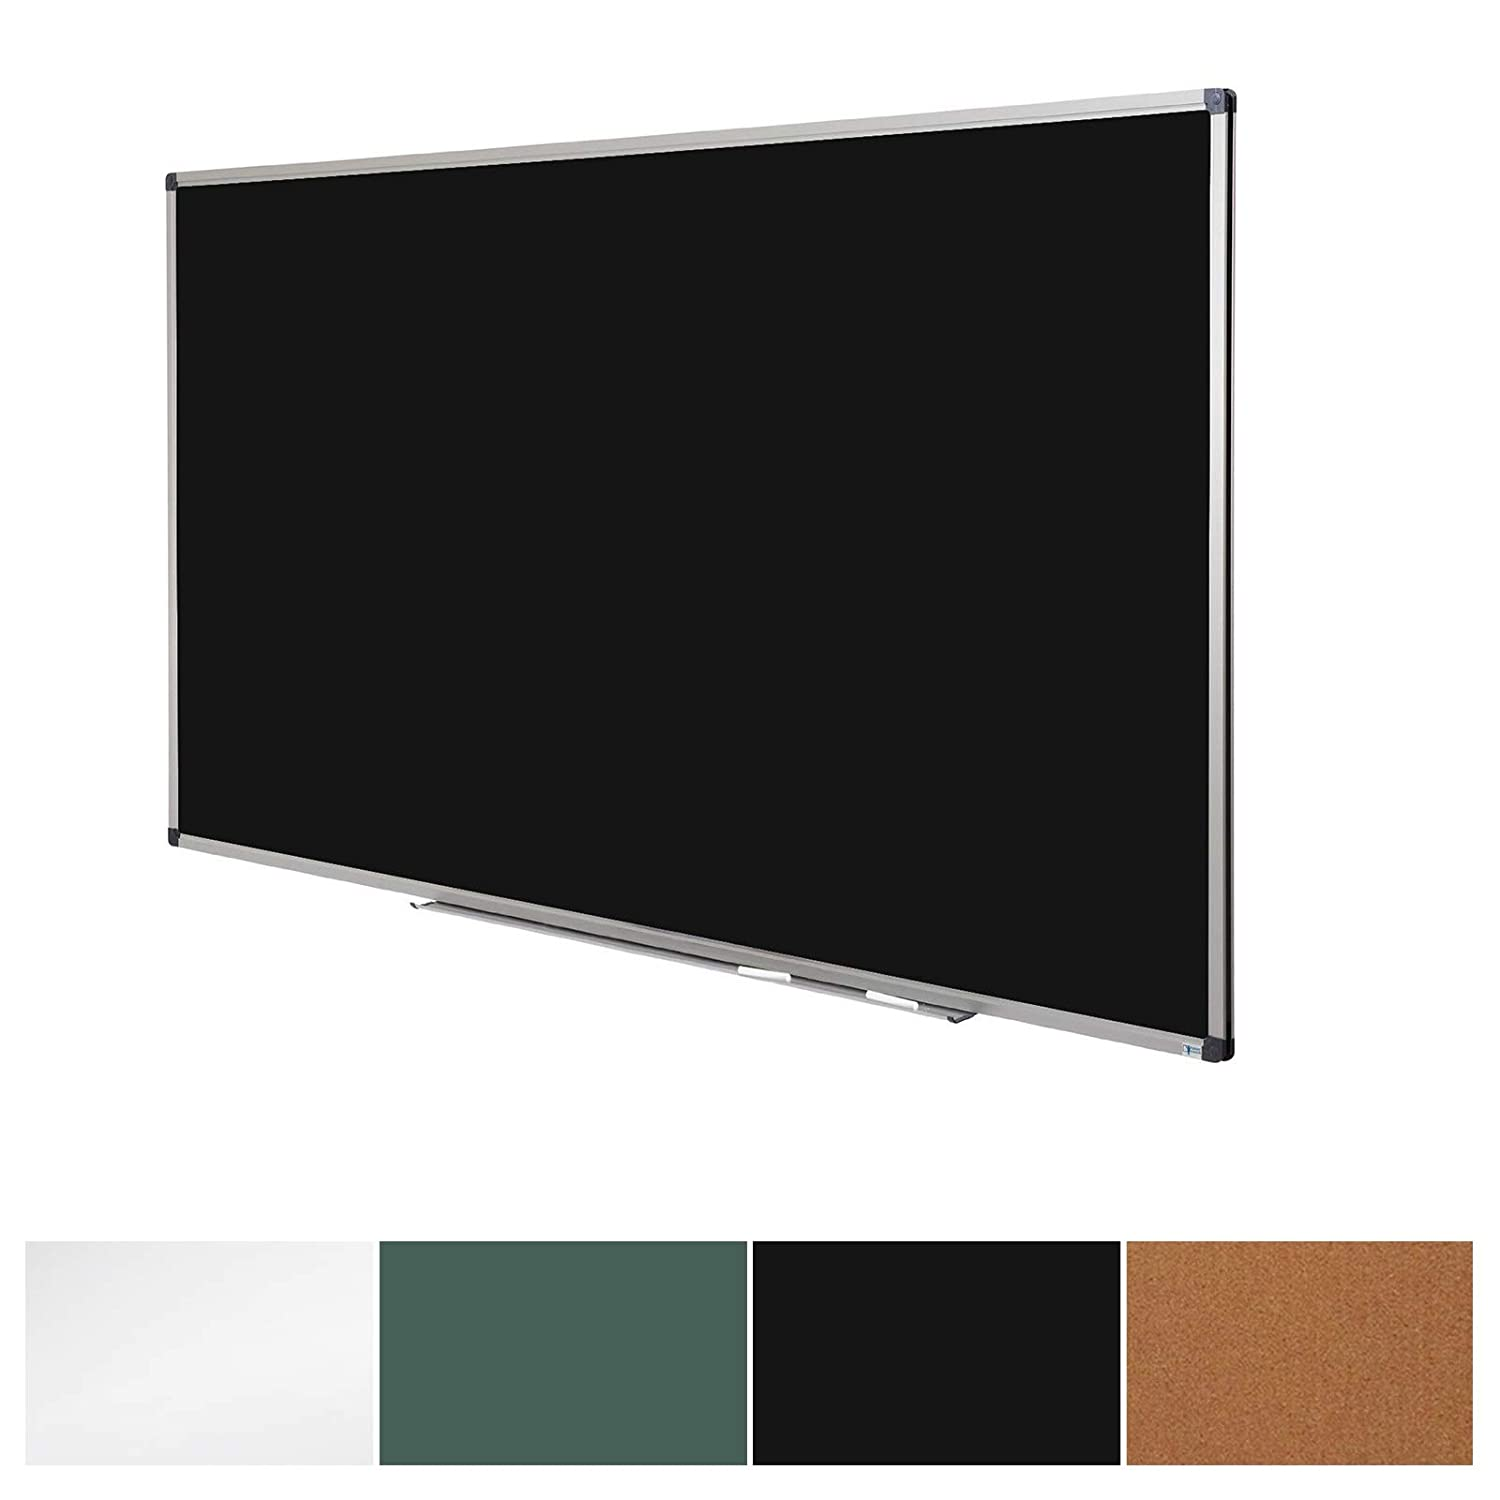 Green Magnetic Chalk Board | Aluminium Framed | Excellent Solution for Art, Notes and Memos | 3 Sizes Available | 44